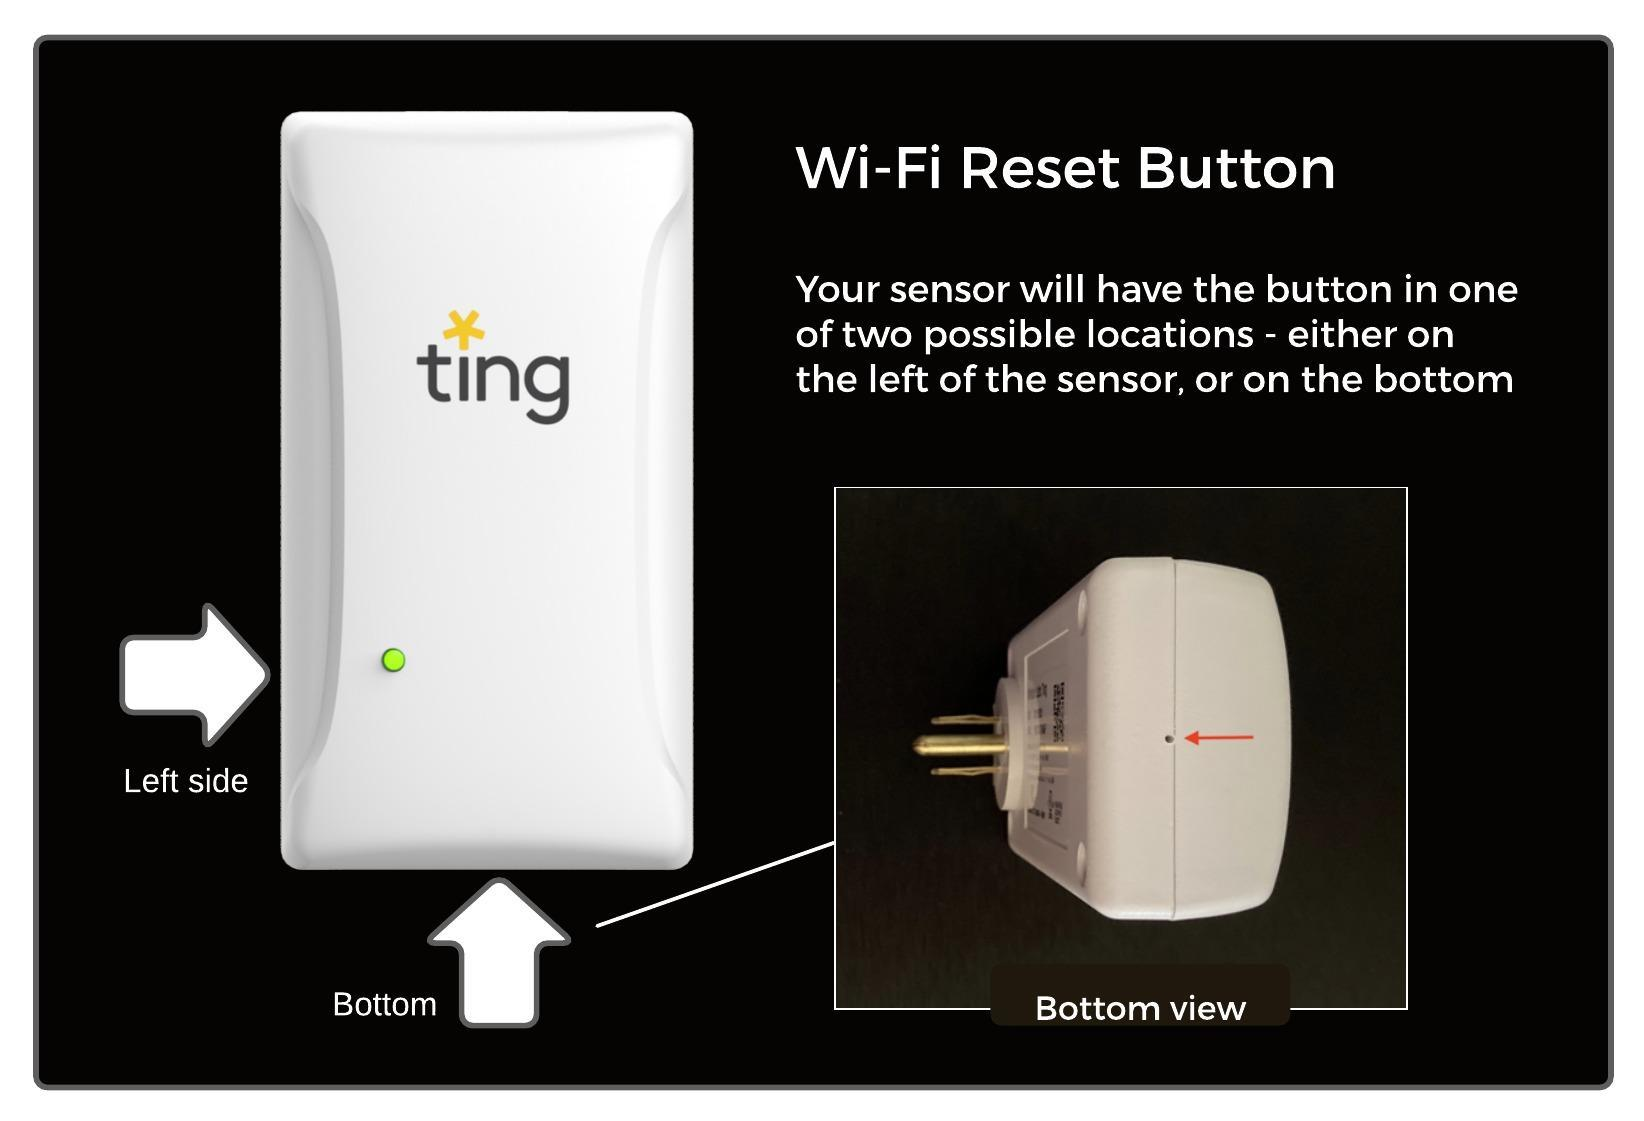 Ting sensor with wi-fi reset button locations depicted